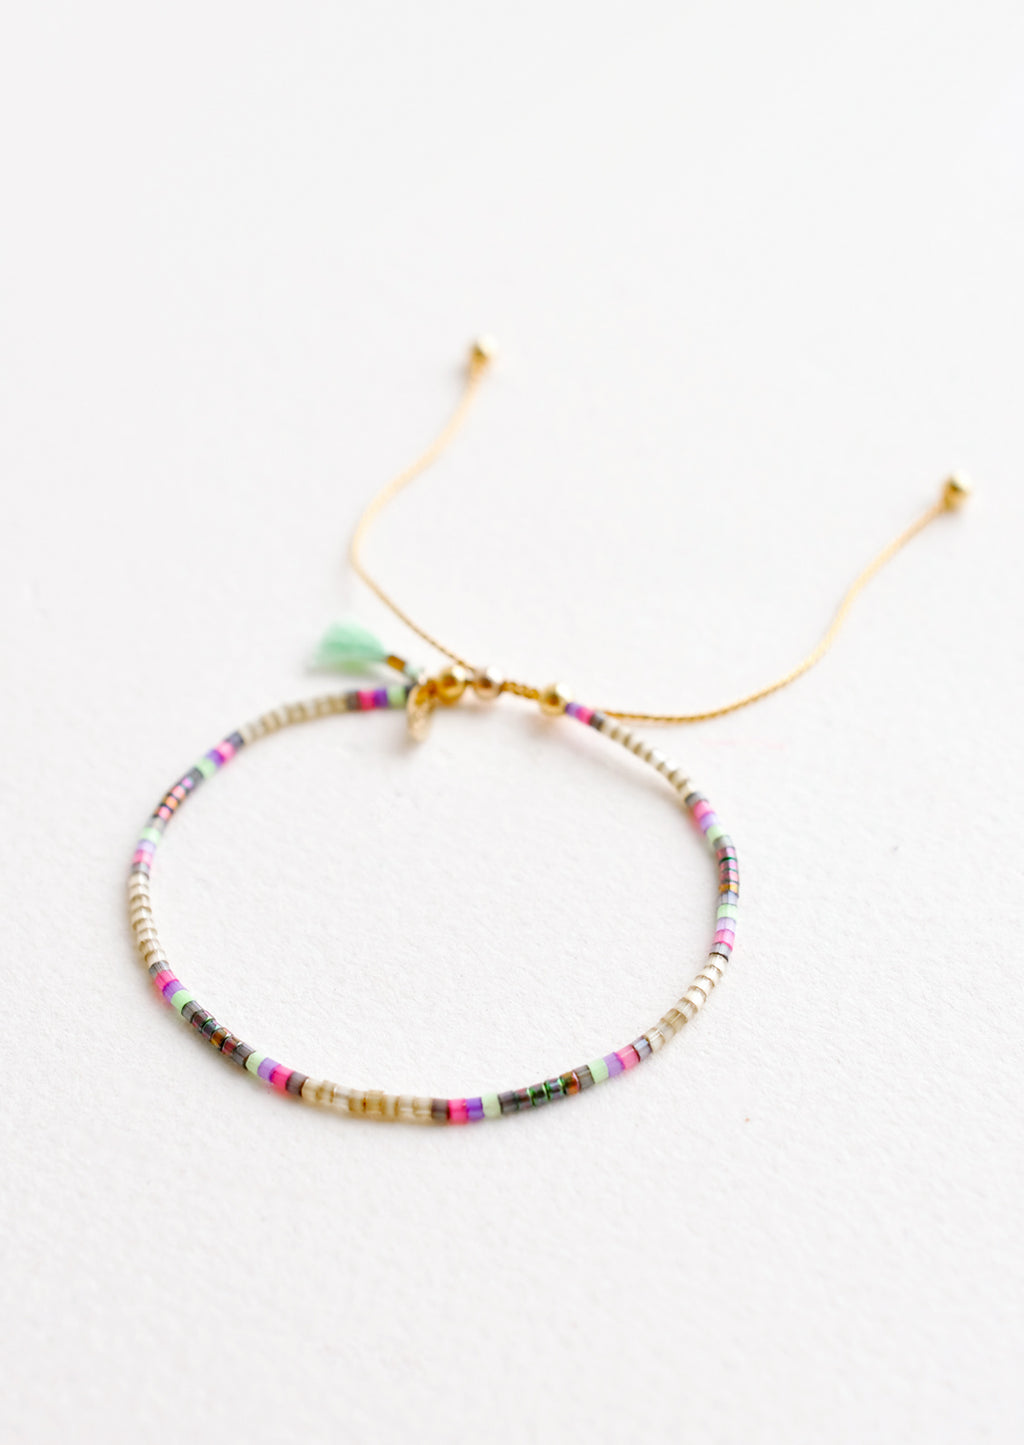 Oyster / Olive / Pink: Delicate bracelet of gray glass beads with regularly spaced sections of pink and green beads on a thin gold chain.